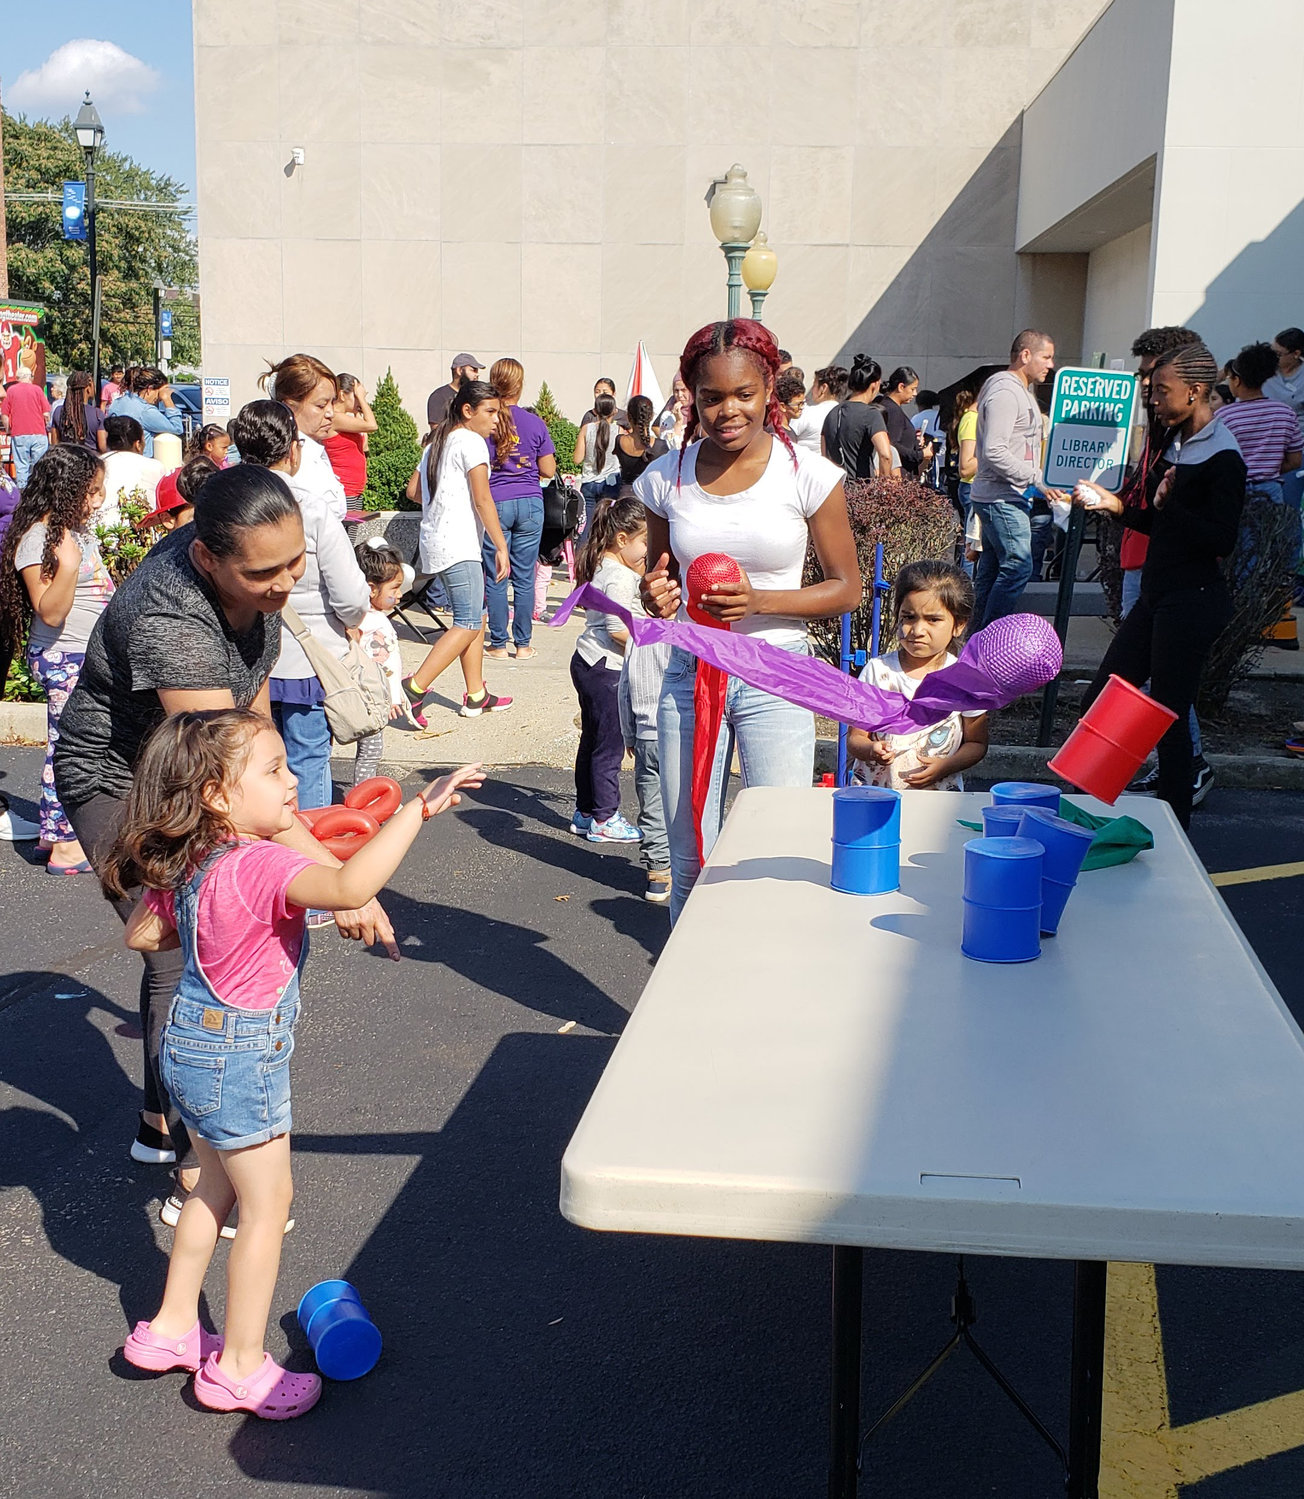 In an effort to knock down the cans to win a prize, Samantha Diaz Mendoza, 4, threw a purple ball with the help of her mom, Ruth Mendoza, left, while Freeport High School volunteer, Kayla Dwyer, 17, looked on.